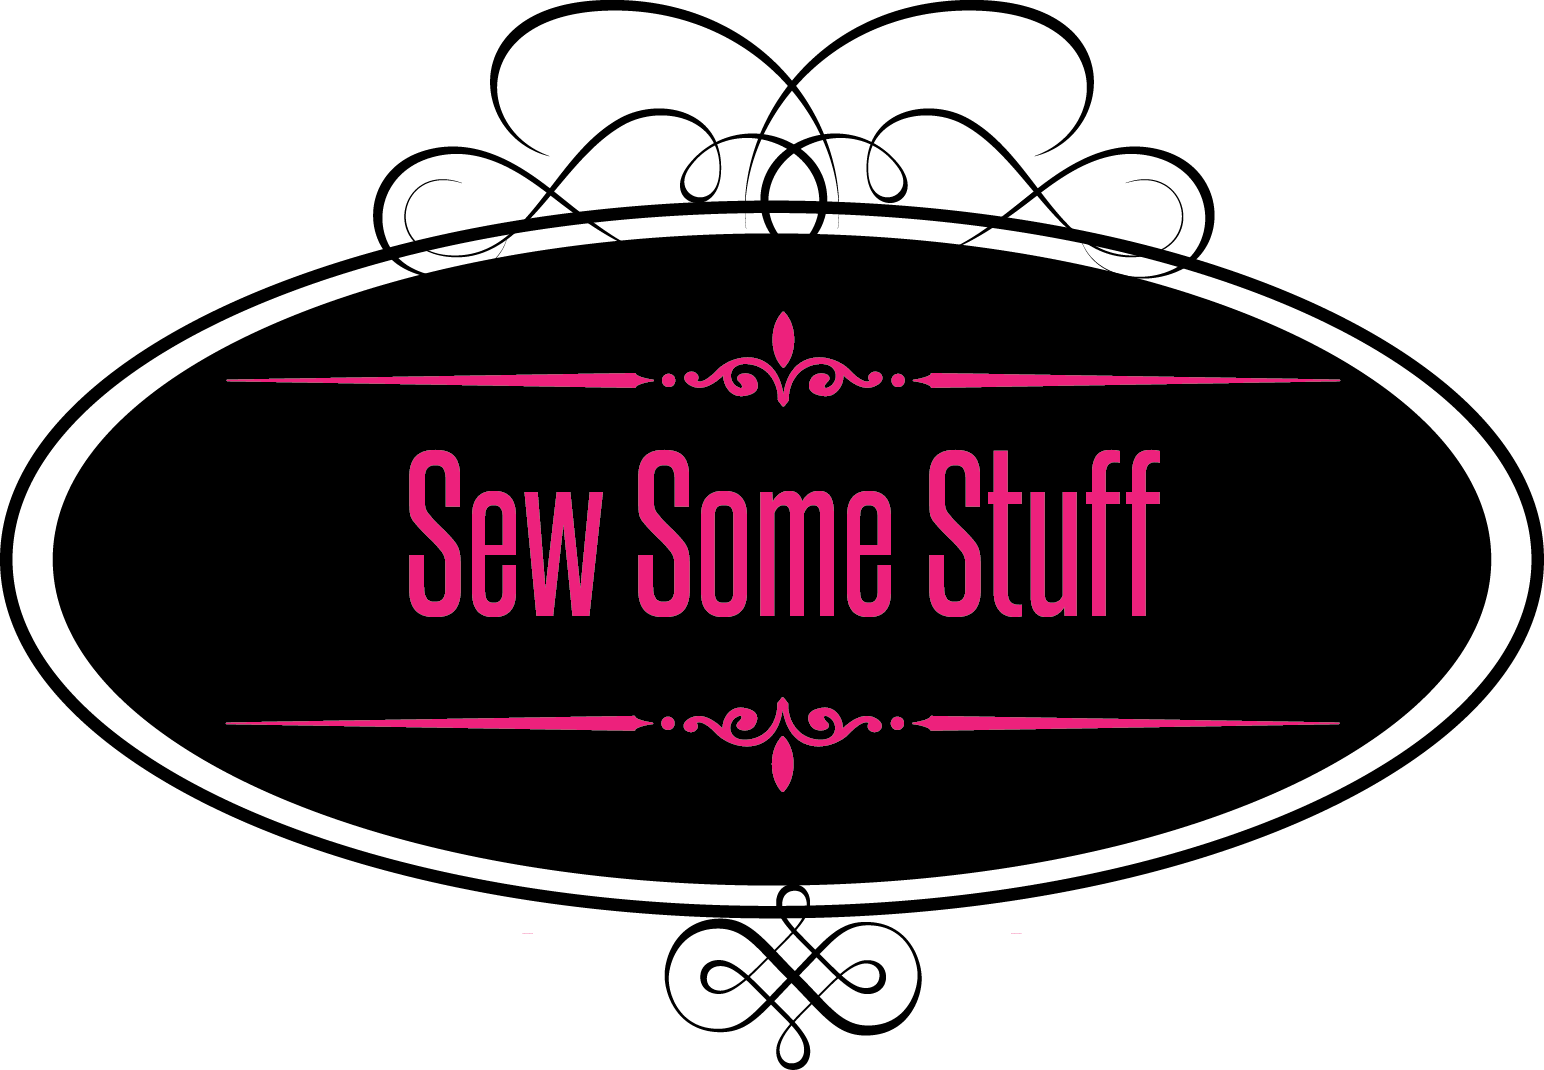 Sew Some Stuff